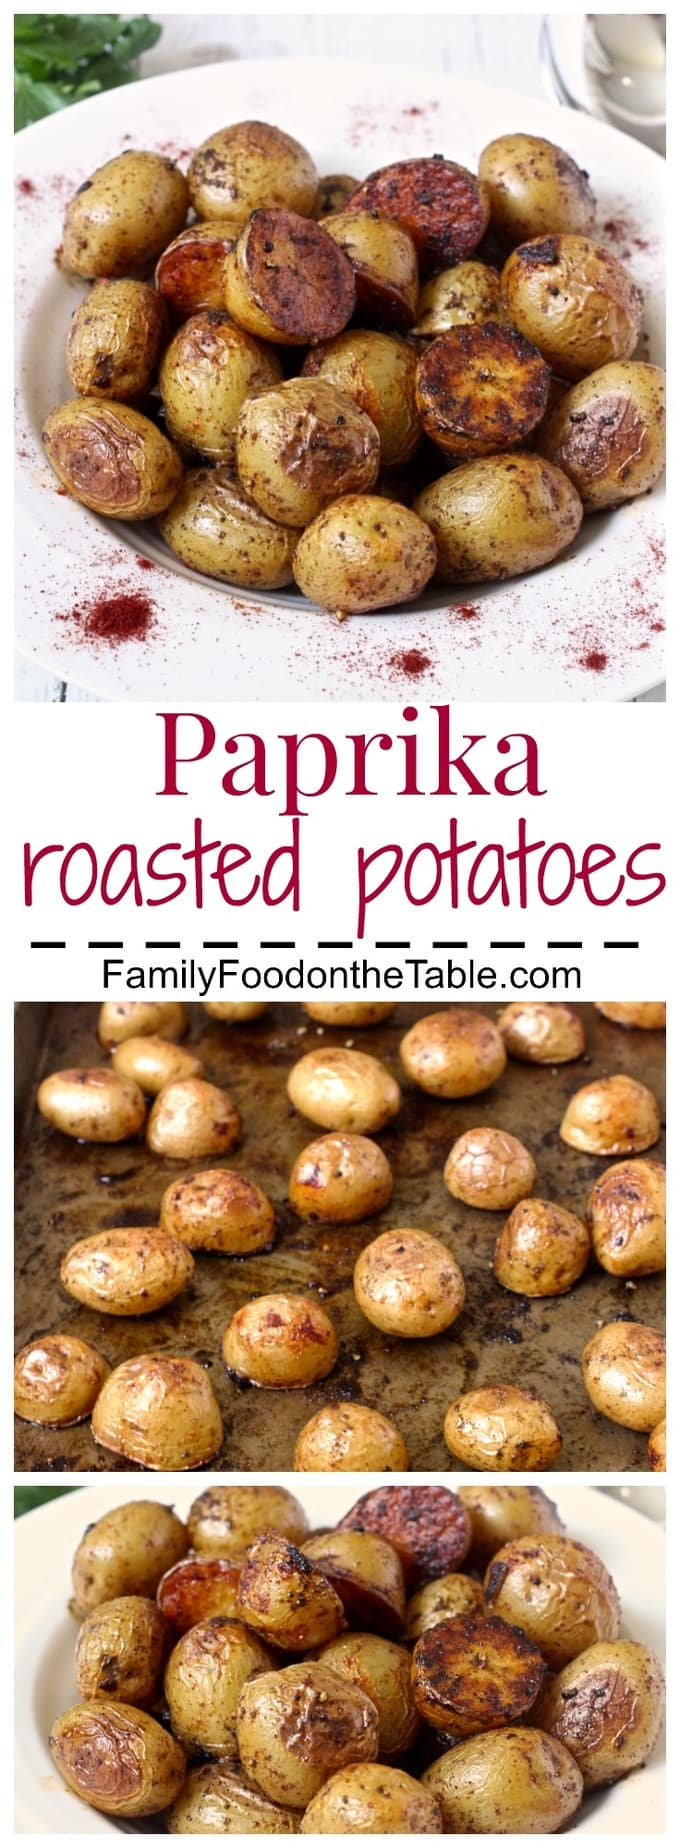 Paprika roasted potatoes are an easy, flavorful side dish! | FamilyFoodontheTable.com